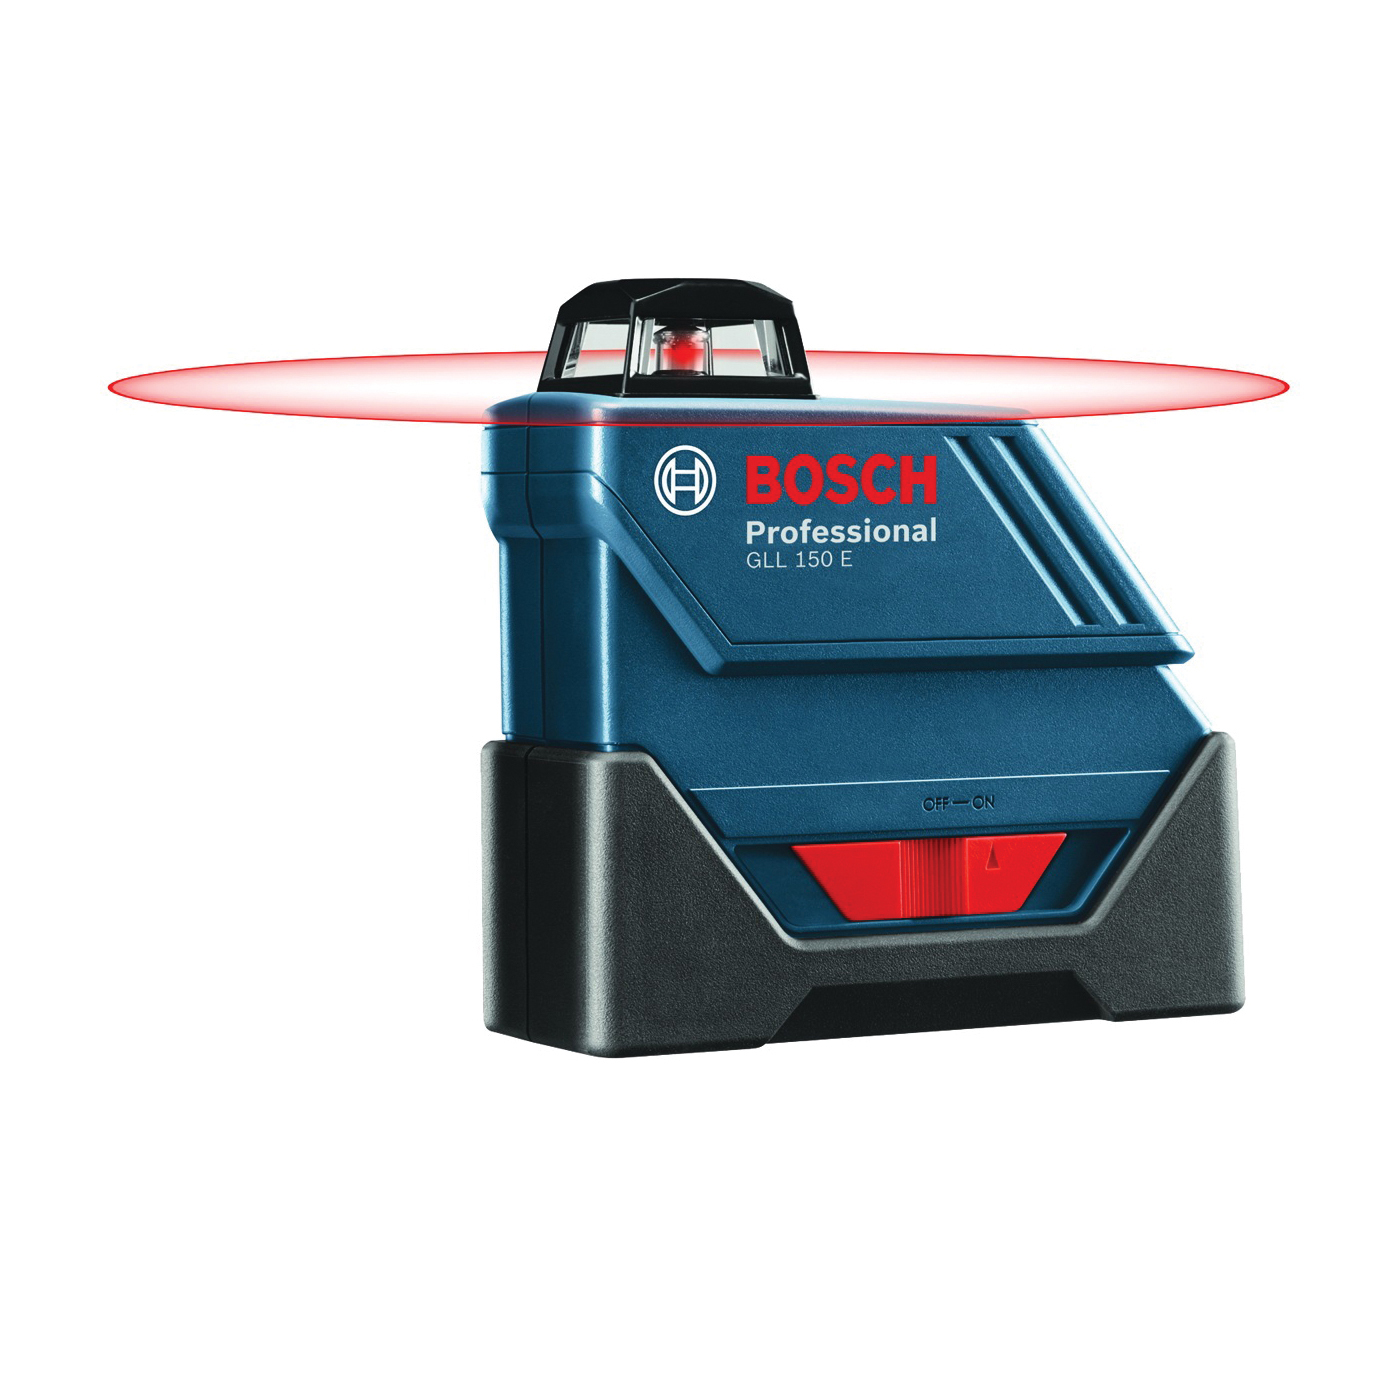 Picture of Bosch GLL 150 ECK Line Laser, 500 ft, +/-3/16 in at 100 ft Accuracy